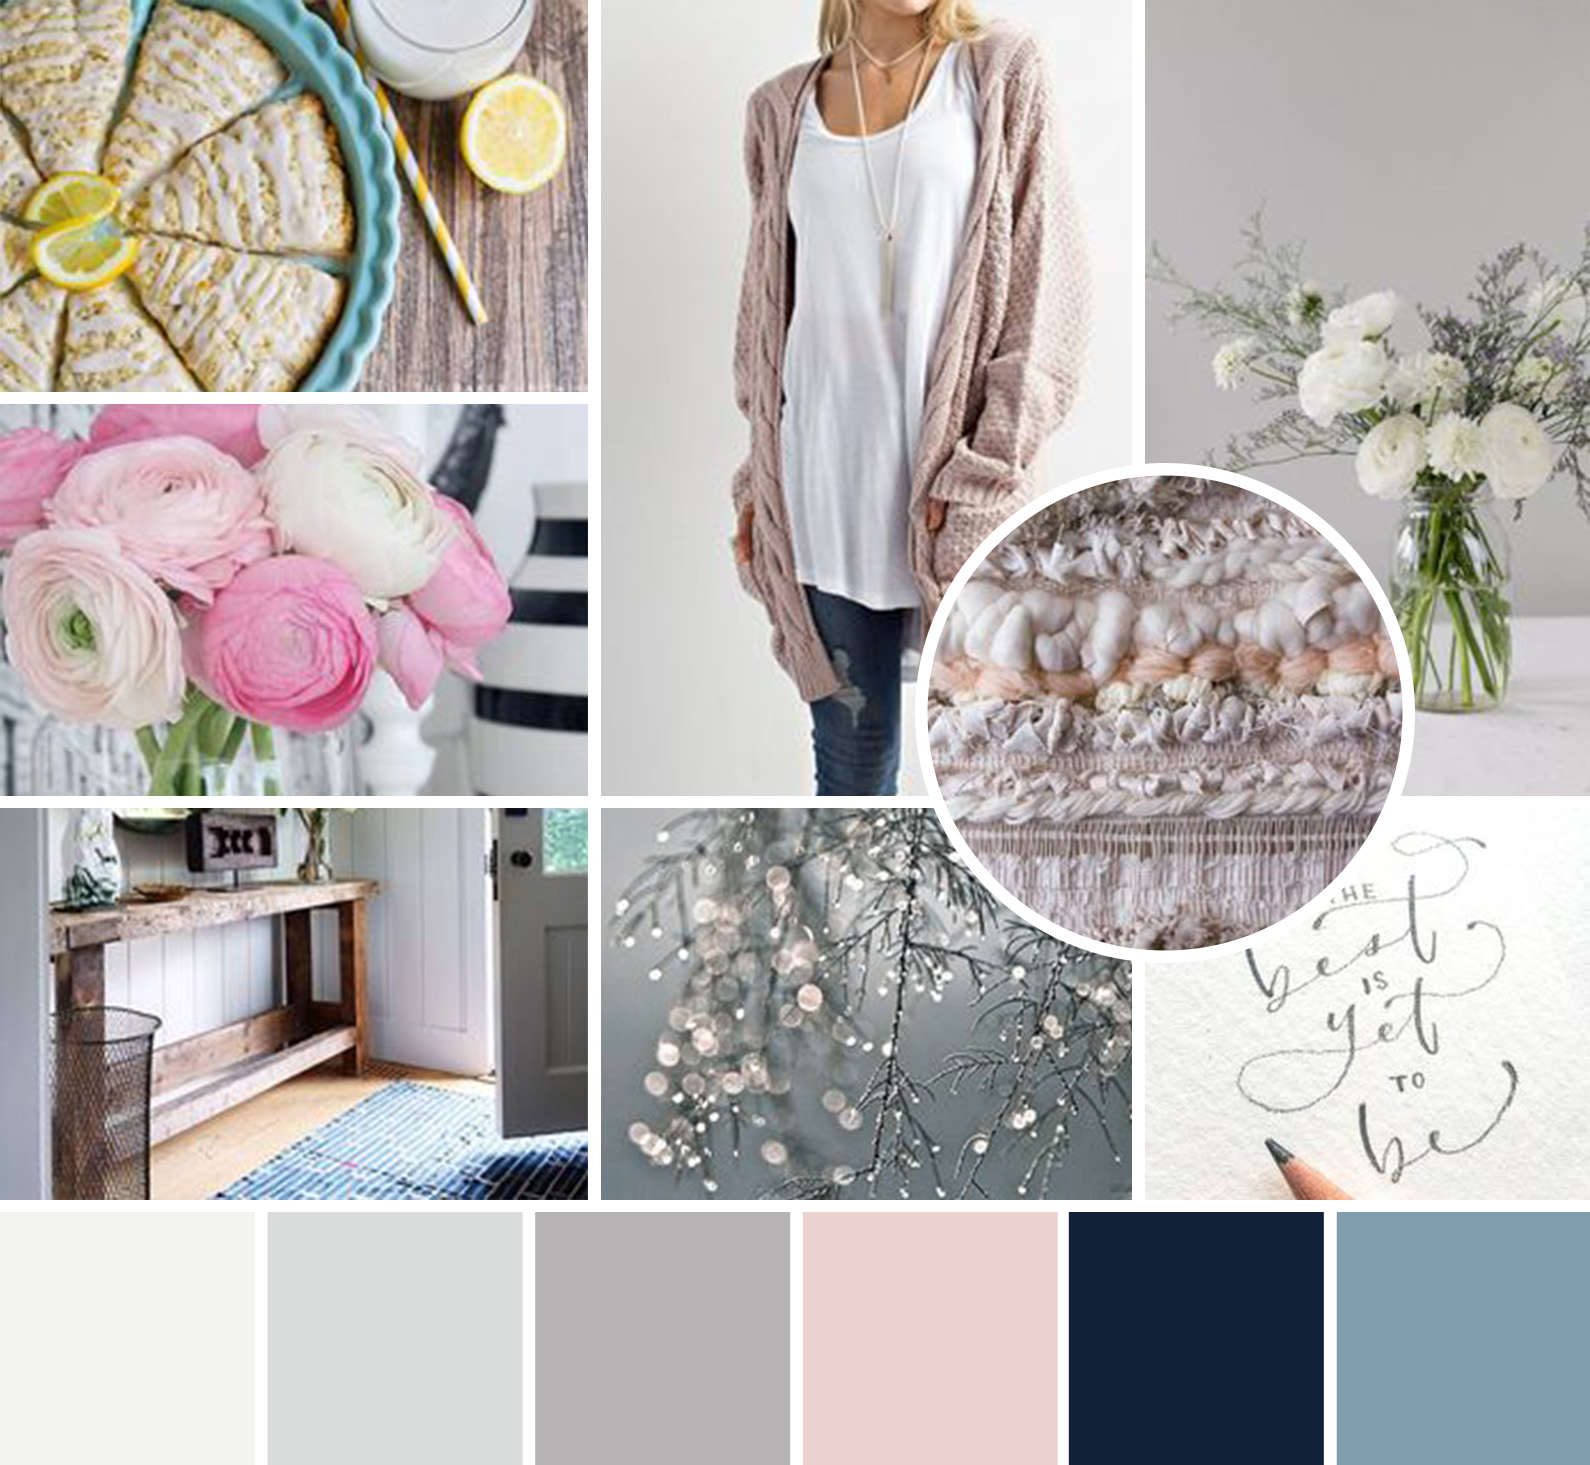 mood board for branding client with pink and blue romantic tones